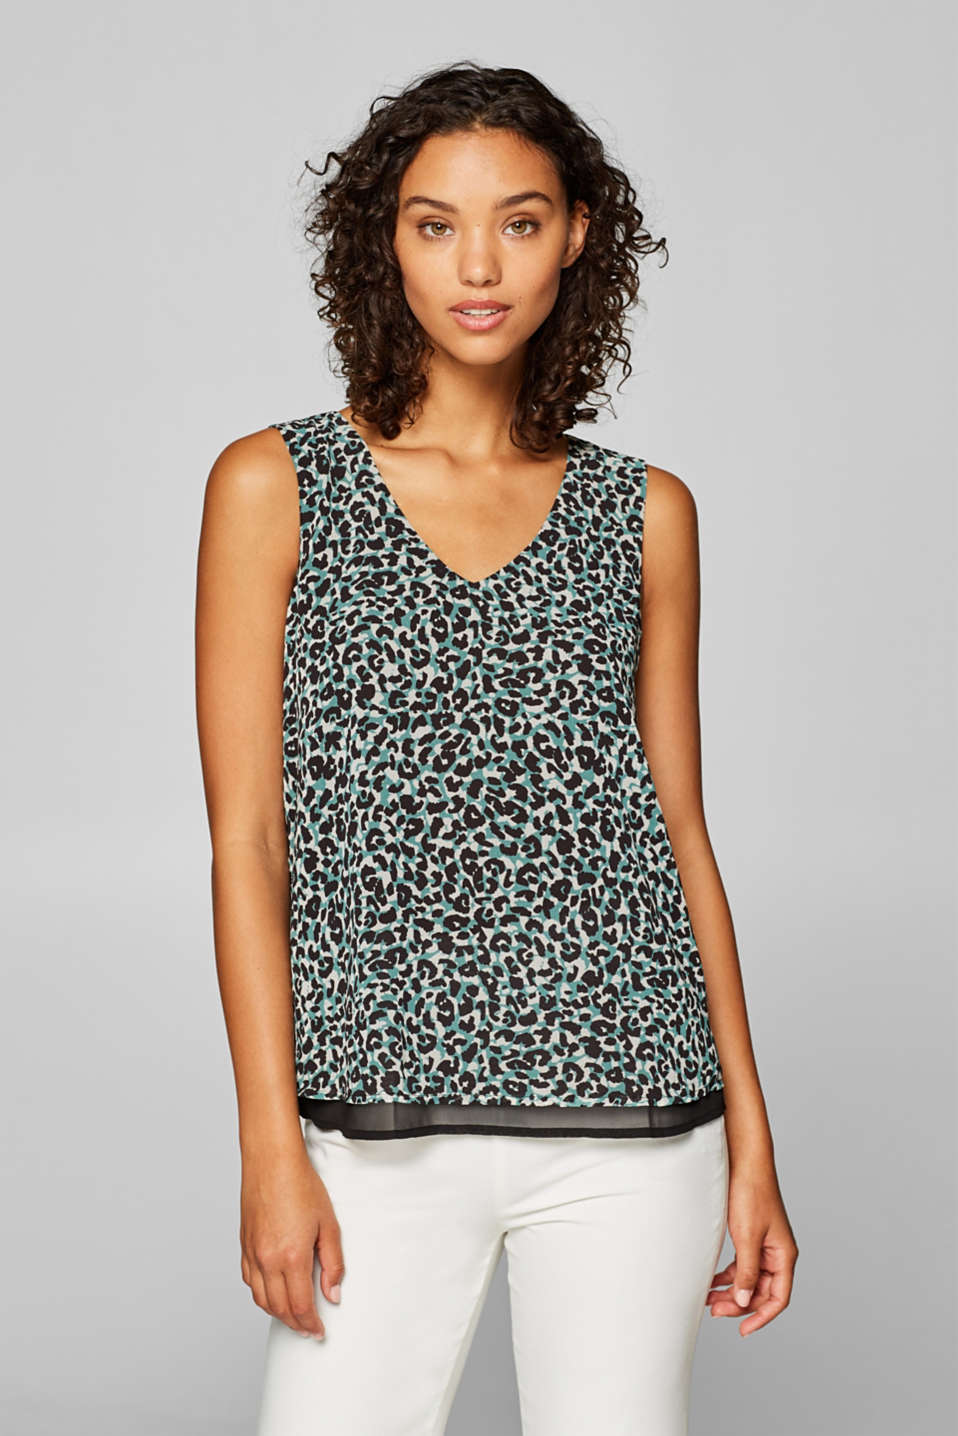 Esprit - Blouse top with leopard print and bow